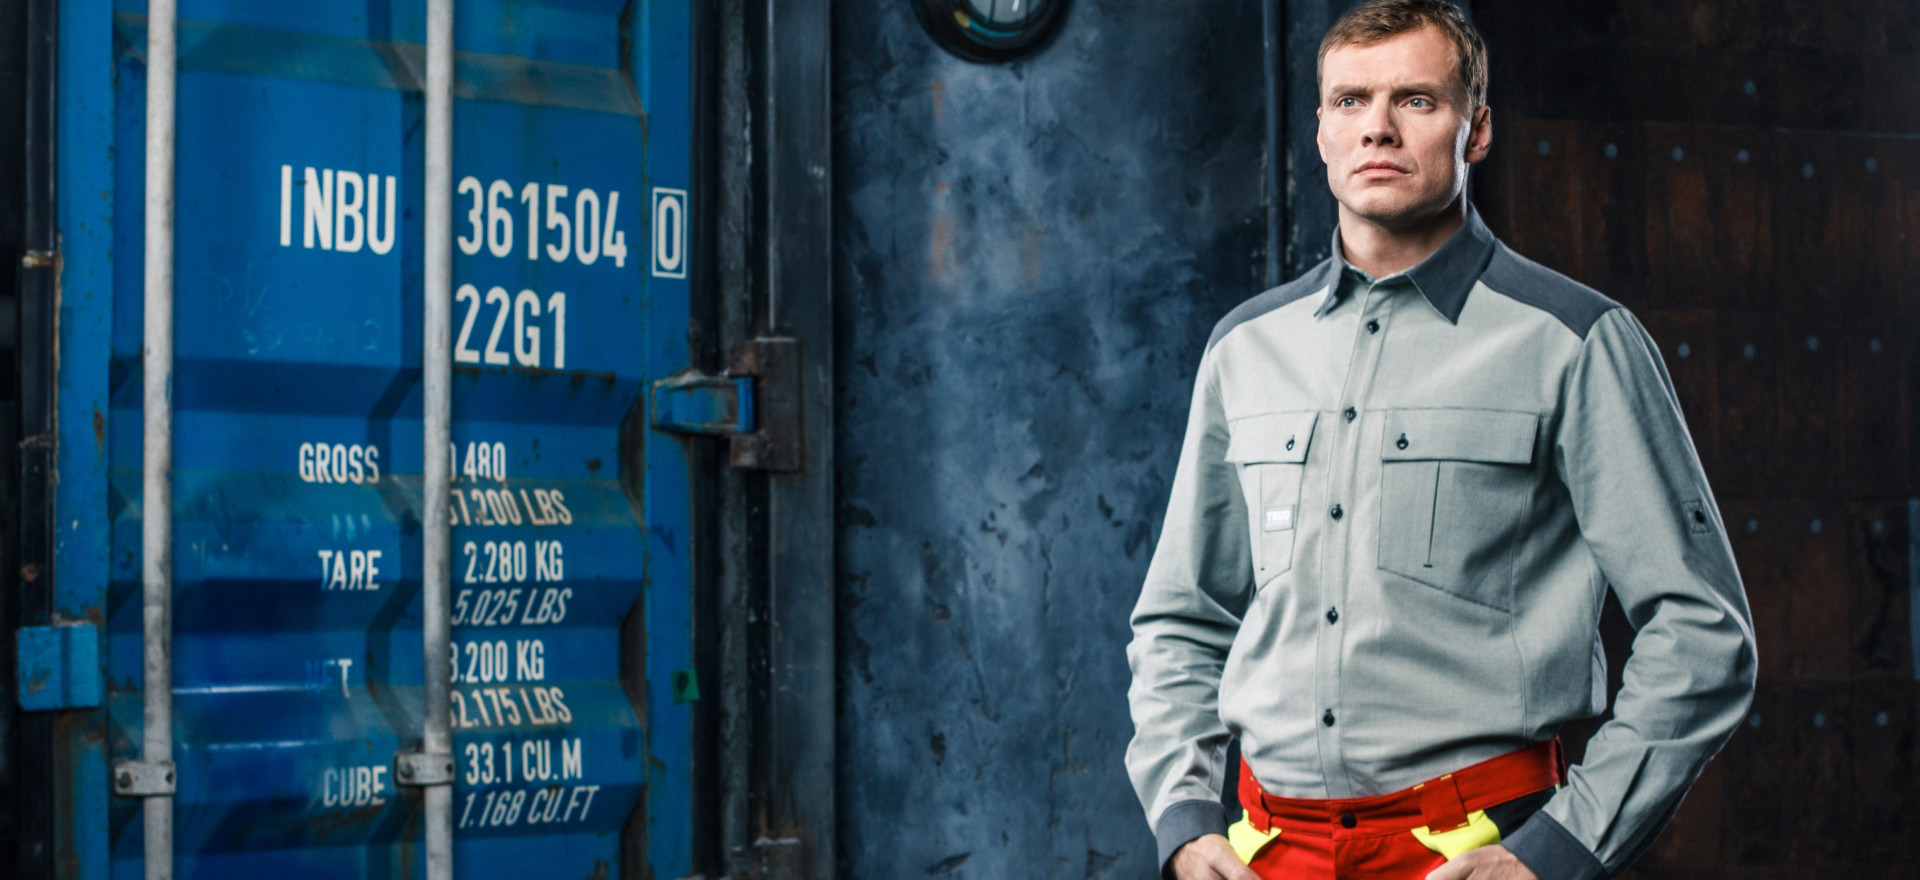 JSC BTС Group will present a new collection of fire-resistant working wear for the oil and gas industry